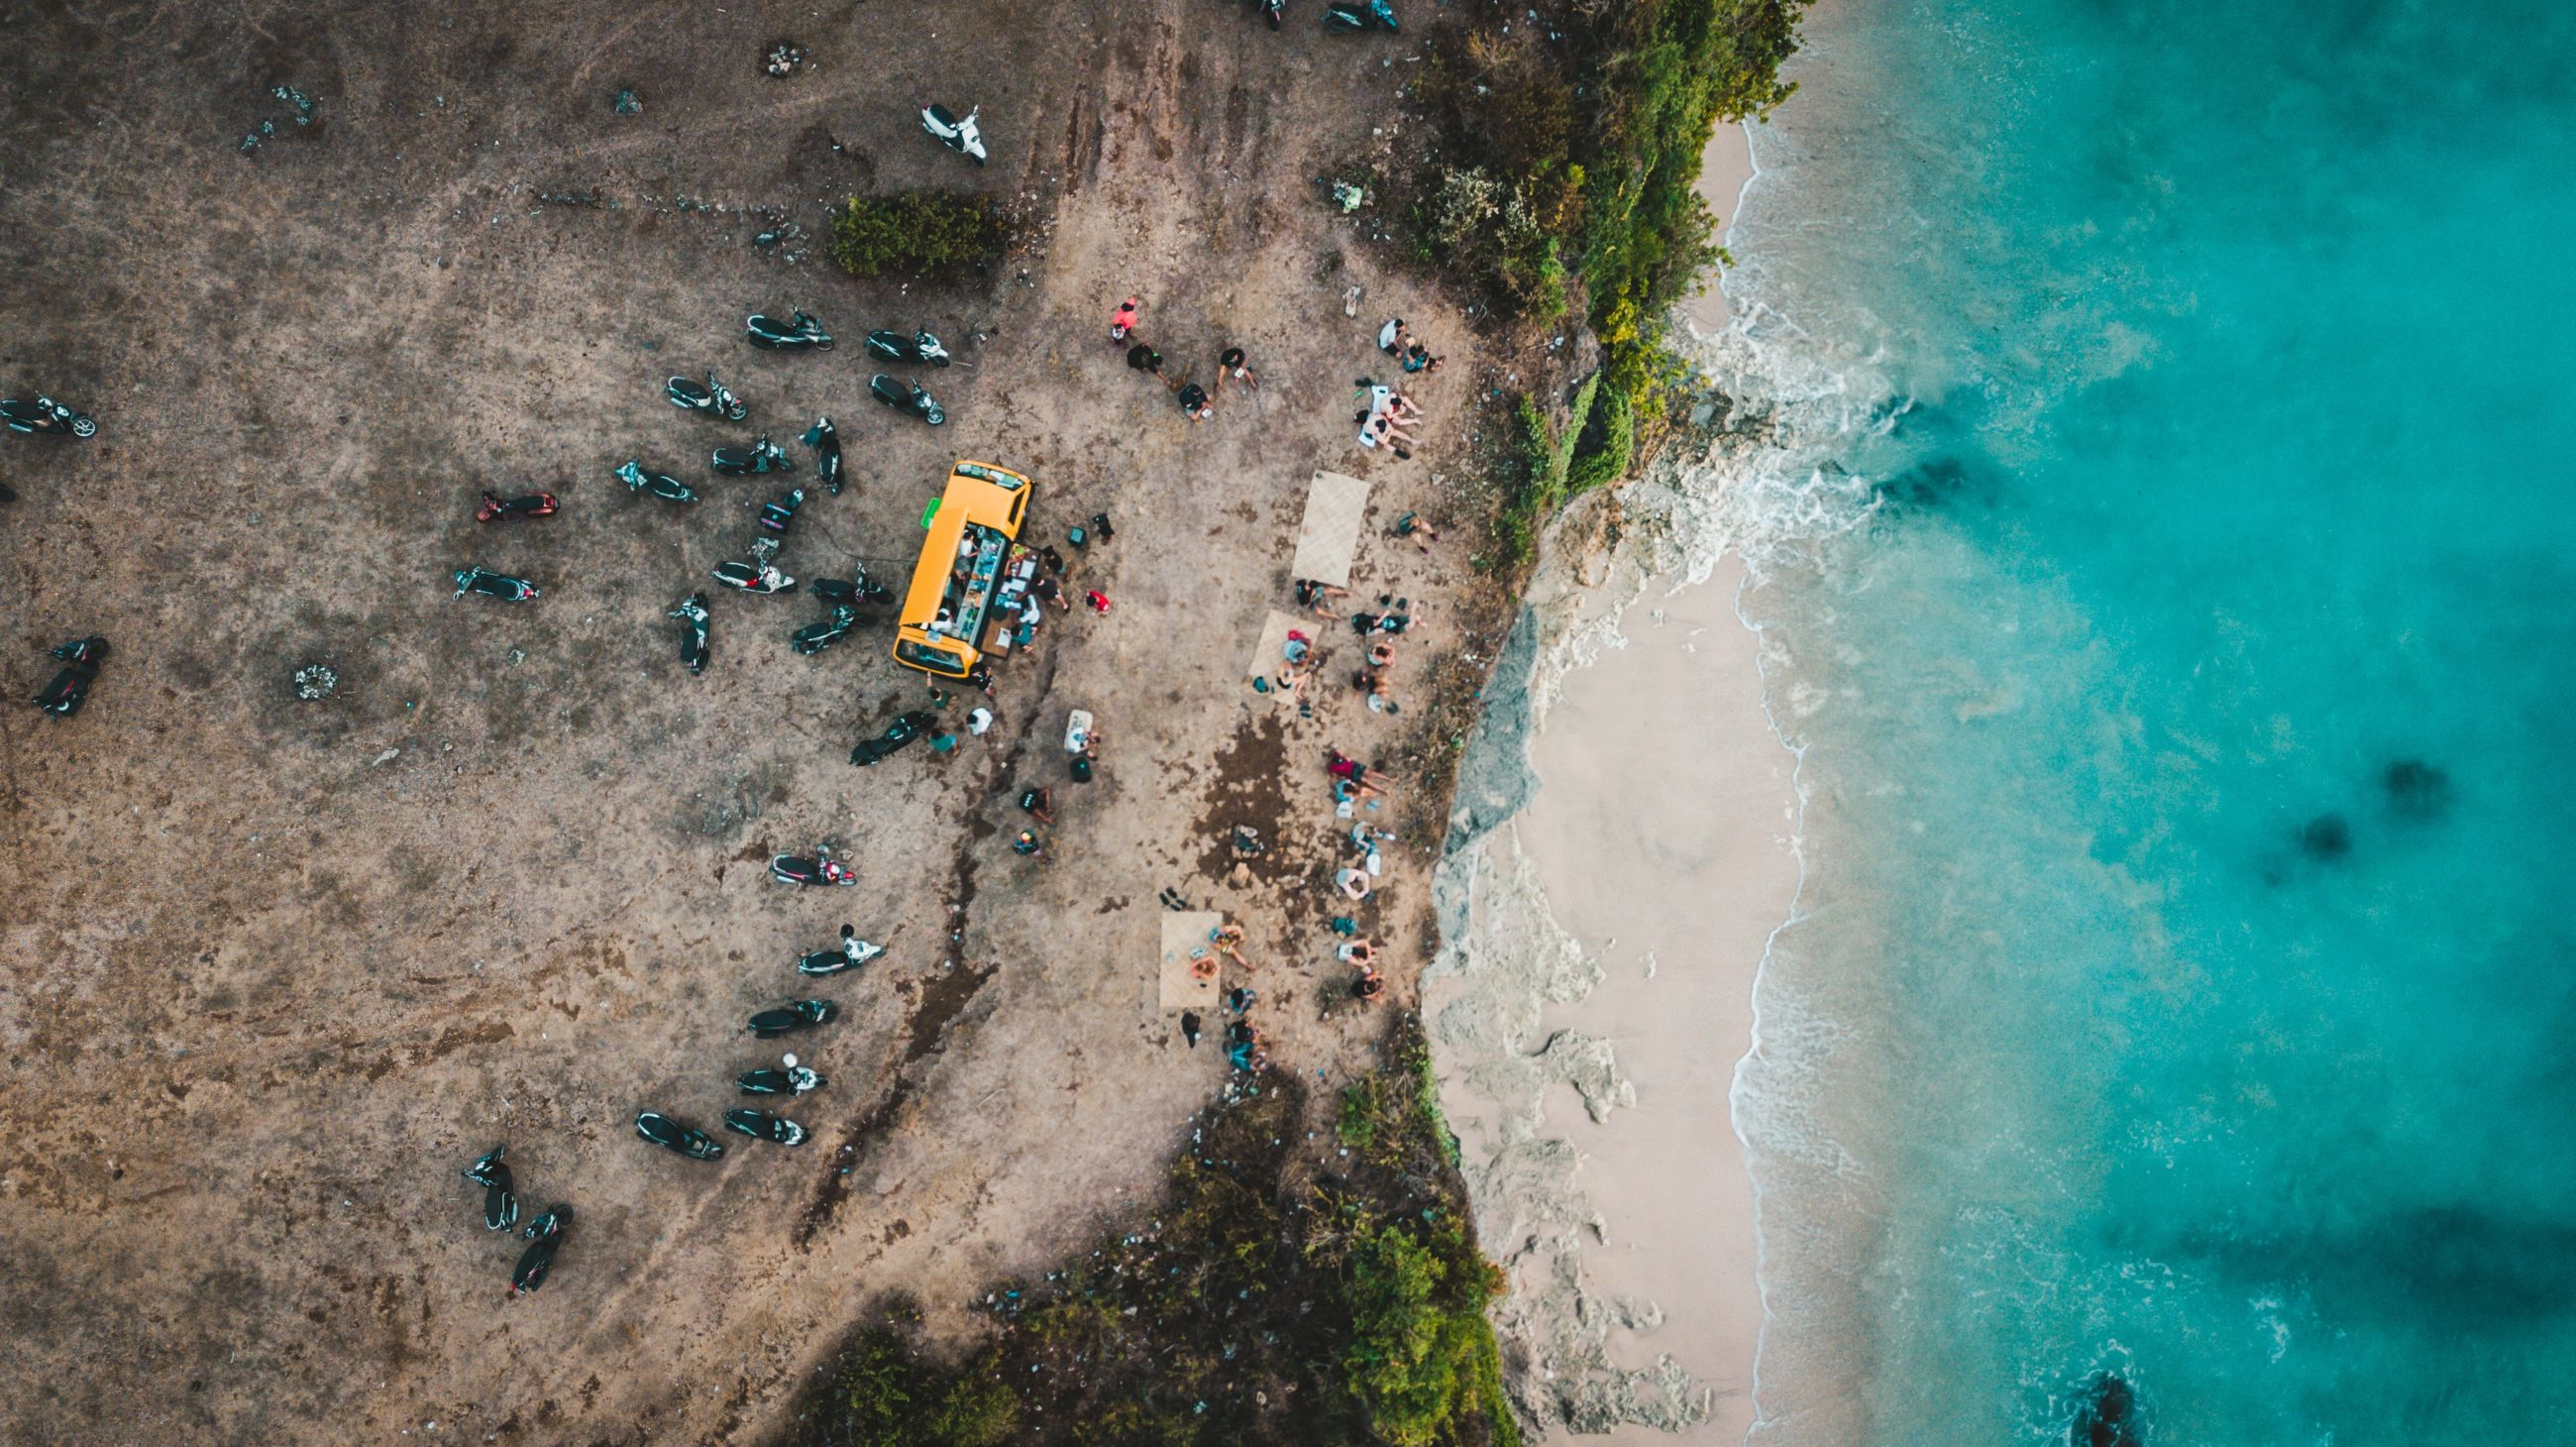 high angle view, water, group of people, land, beach, day, nature, leisure activity, sea, sport, real people, aerial view, directly above, large group of people, crowd, beauty in nature, motion, outdoors, lifestyles